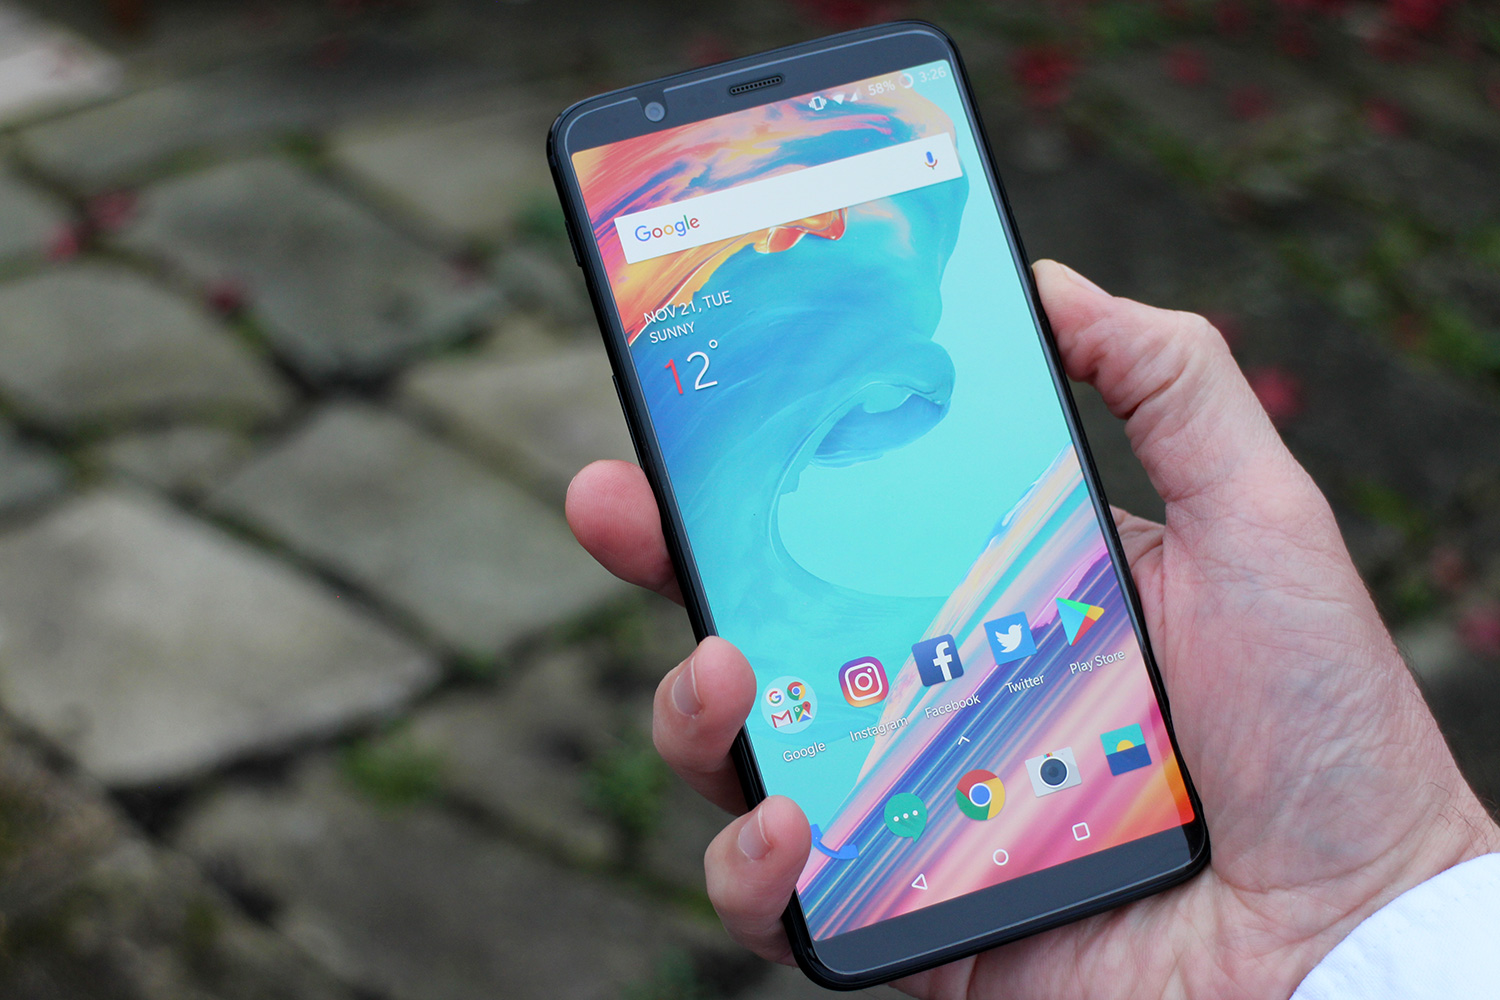 OnePlus CEO Confirms OnePlus 6 Will Launch In June